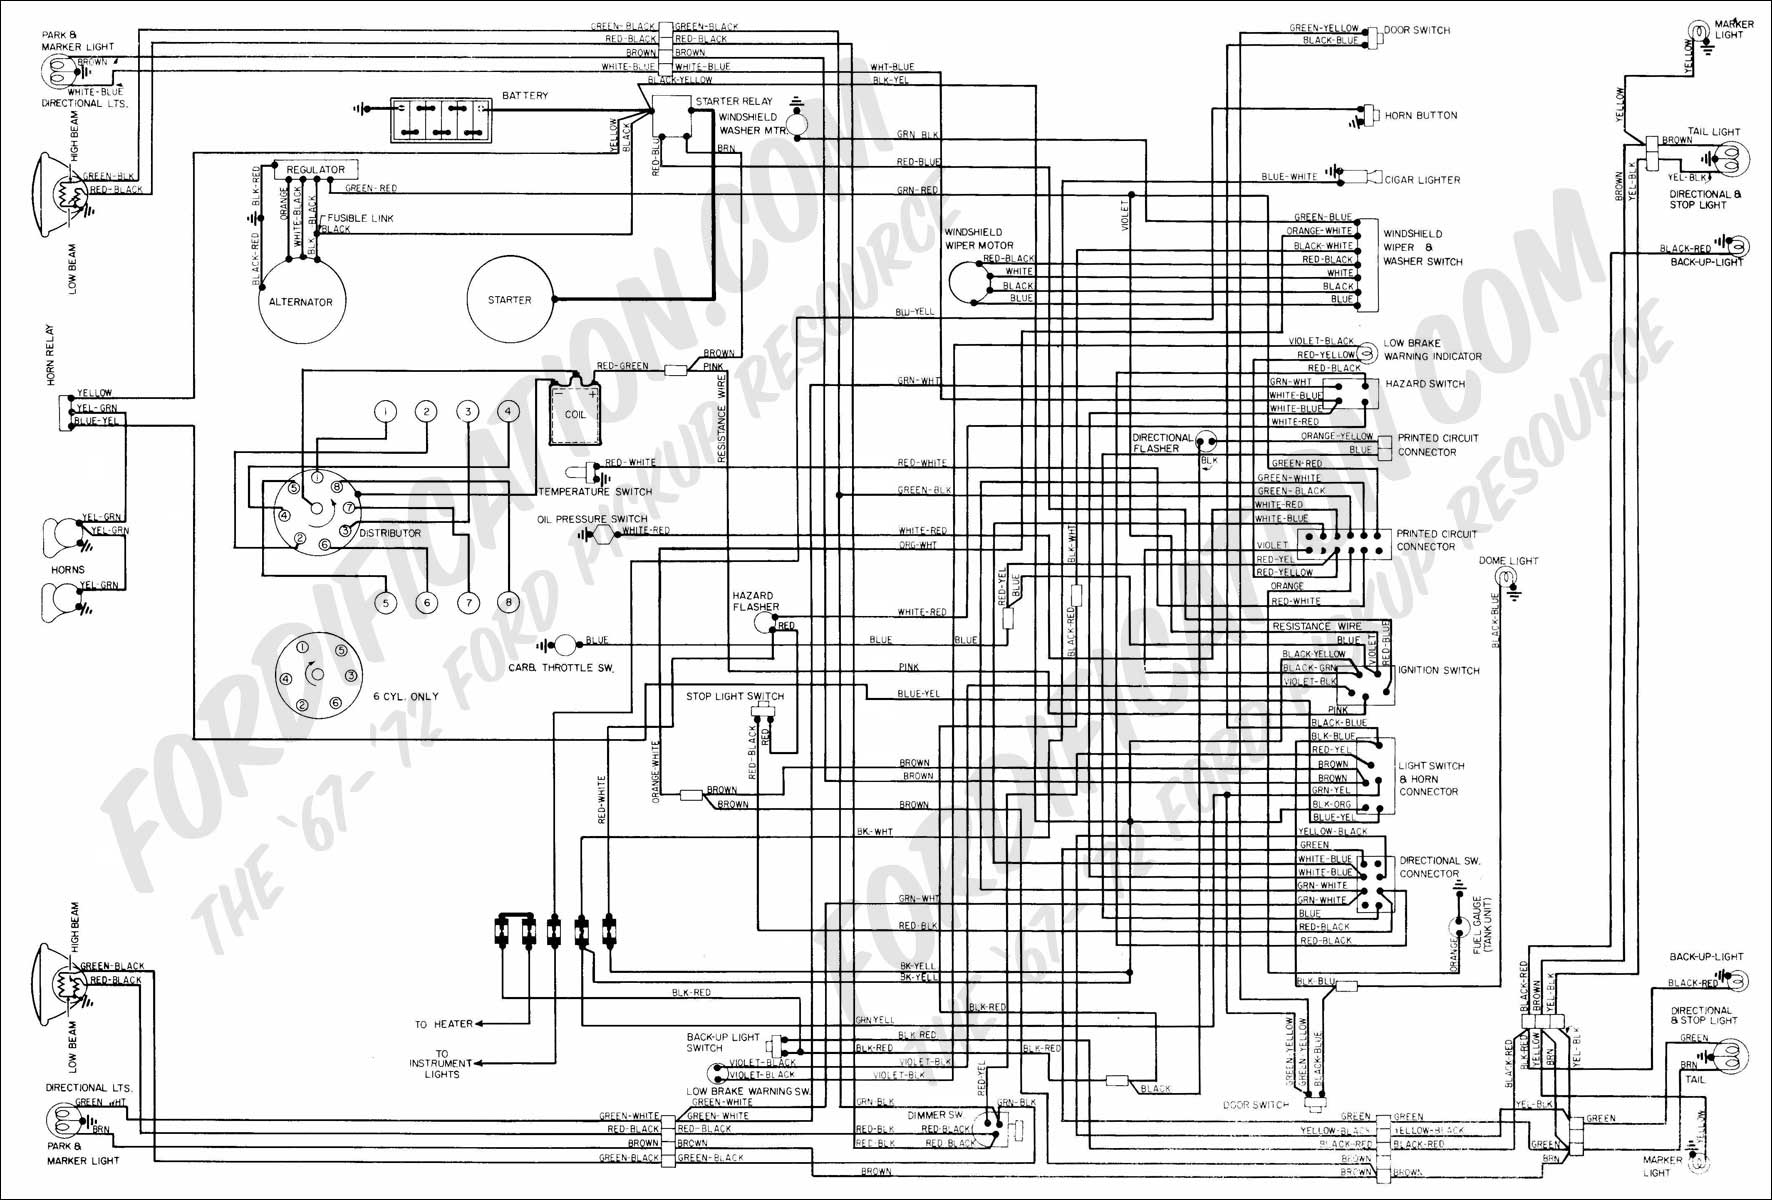 1990 Ford F250 Wiring Diagram from www.fordification.com